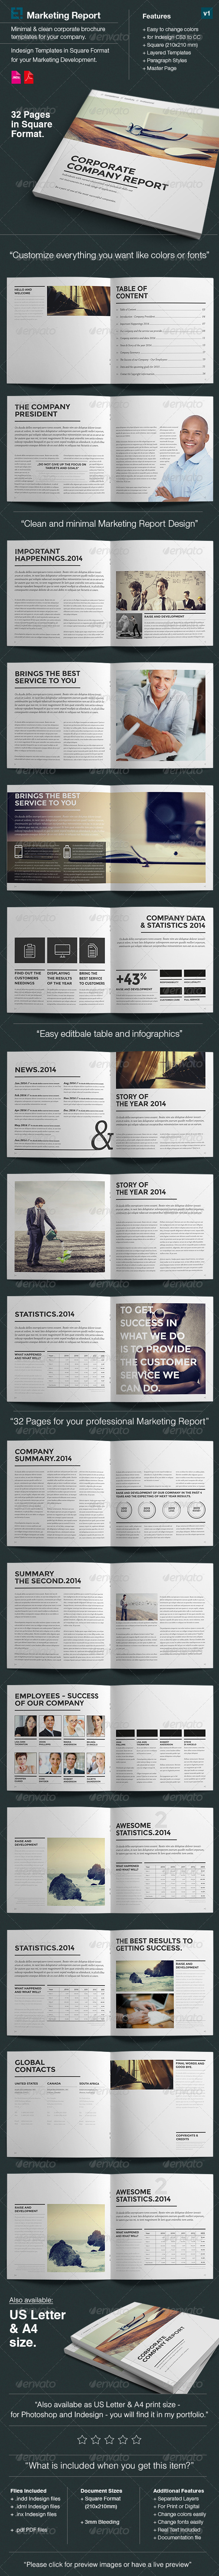 Design Marketing Brochure / Square Size v1  - Corporate Brochures